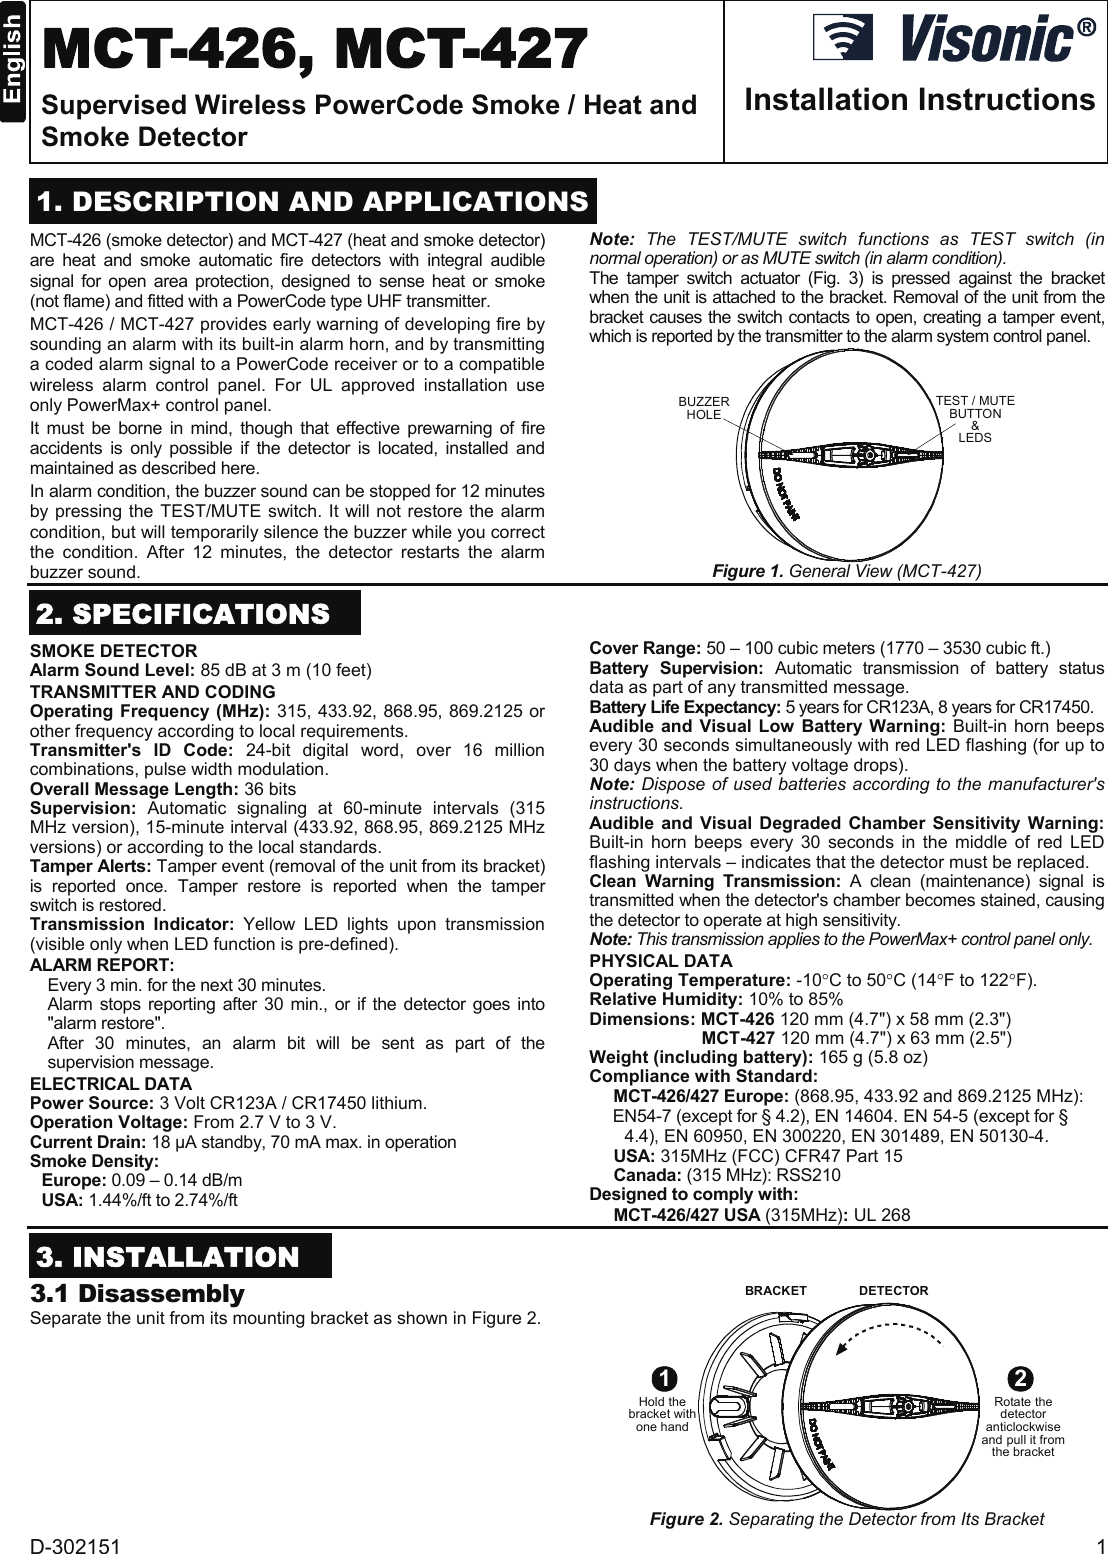 lanson smoke detector instructions